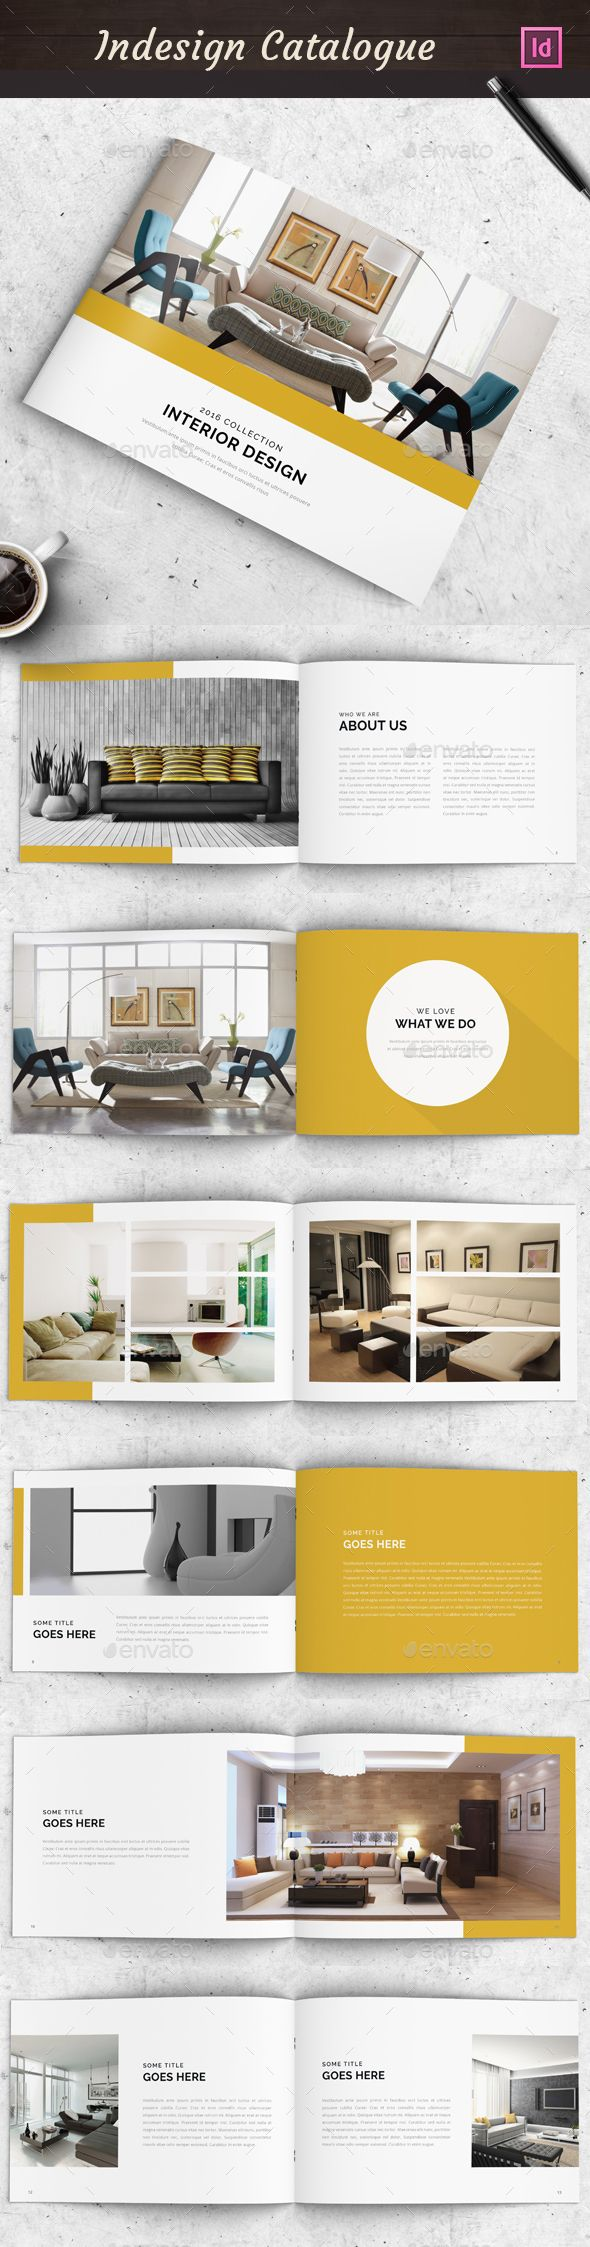 Minimal portfolio brochure indesign indd simple interior design available here also template and brochures rh in  sc 1 st  valoblogi.com & Cool Simple Interior Design Portfolio Layouts - valoblogi.com